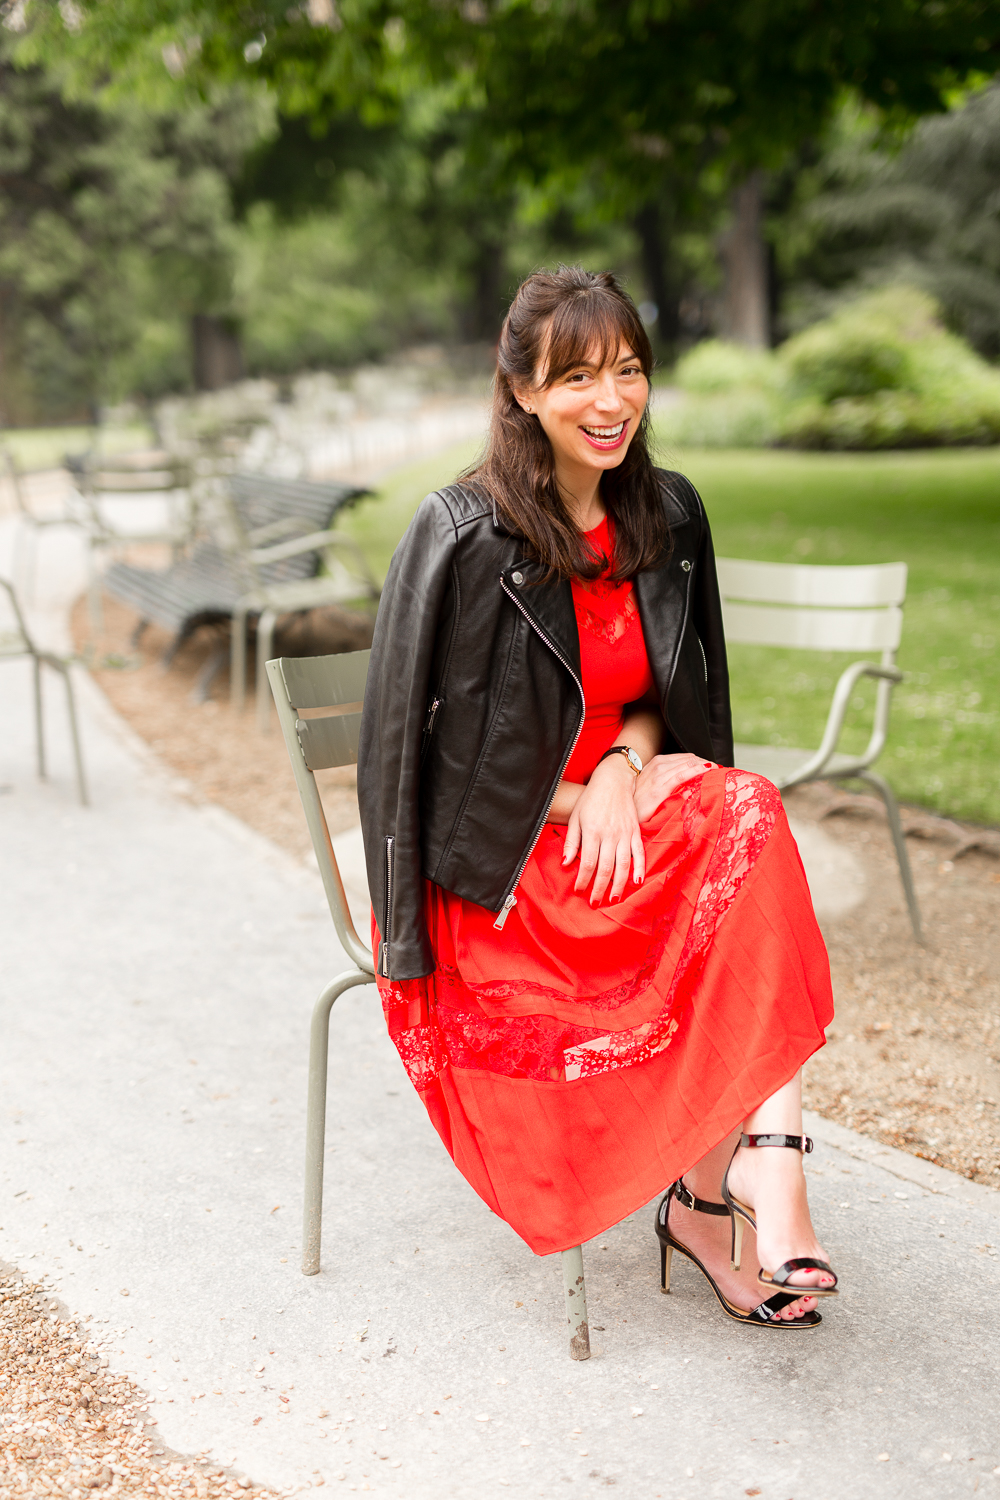 rebecca plotnick in red dress photograph by katie donnelly